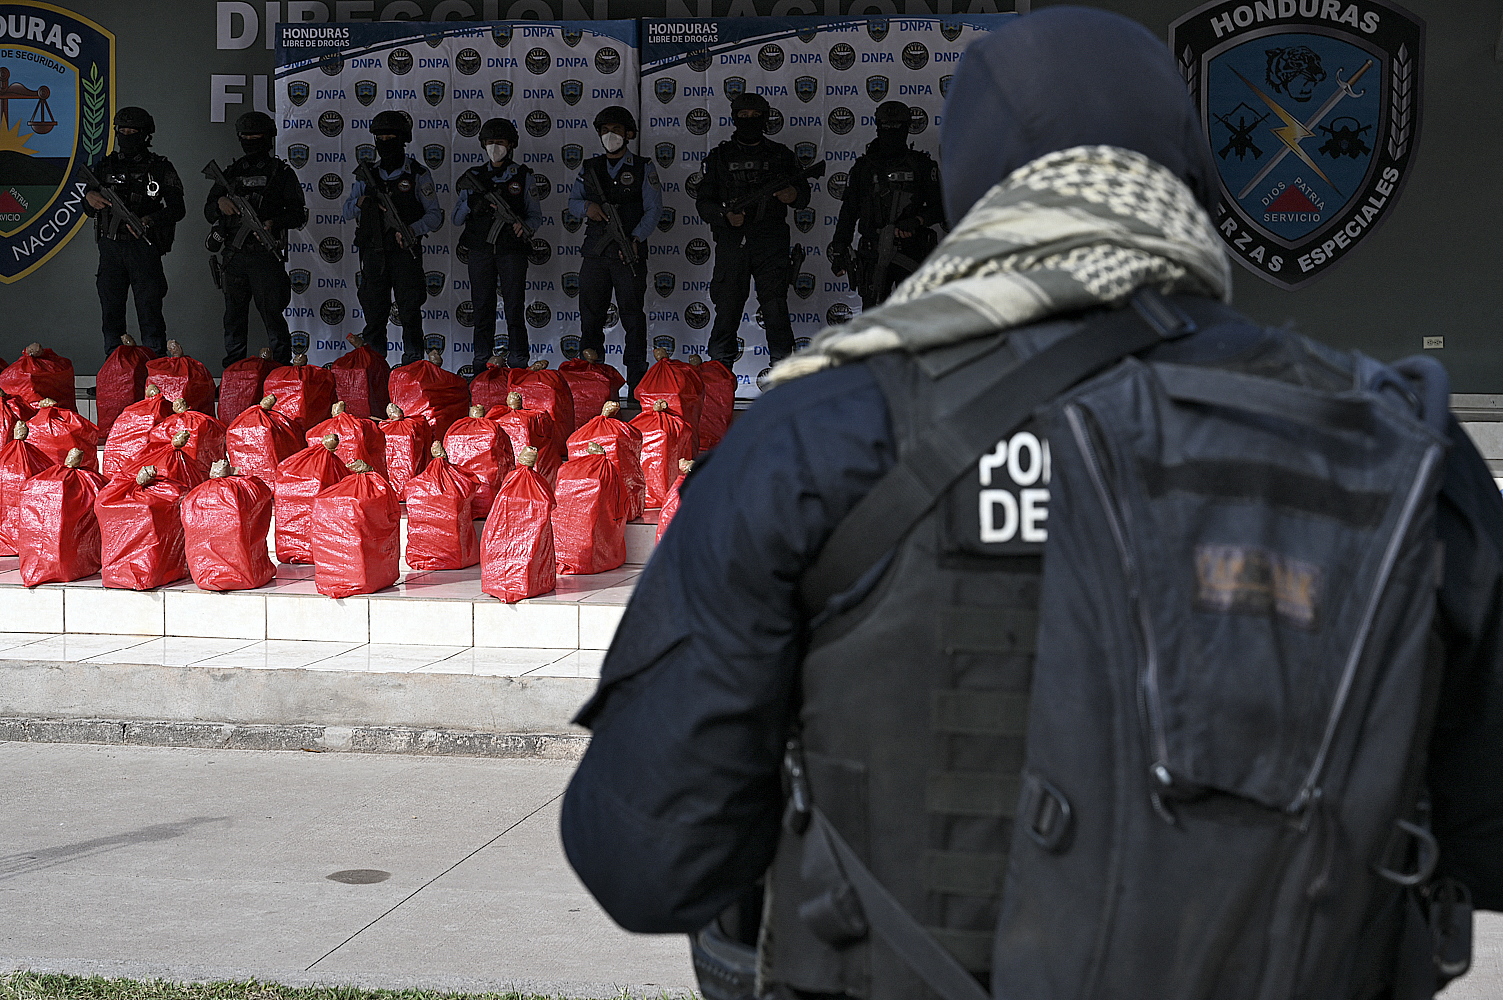 Members of the Anti-Drug National Police Directorate (DNPA) stand guard next to two tons of seized drug in Tegucigalpa on March 20, 2021. - The alleged cocaine was seized in a mountainous area in Icoteas, Limon municipality, Colon department. (Photo by Orlando SIERRA / AFP) (Photo by ORLANDO SIERRA/AFP via Getty Images)